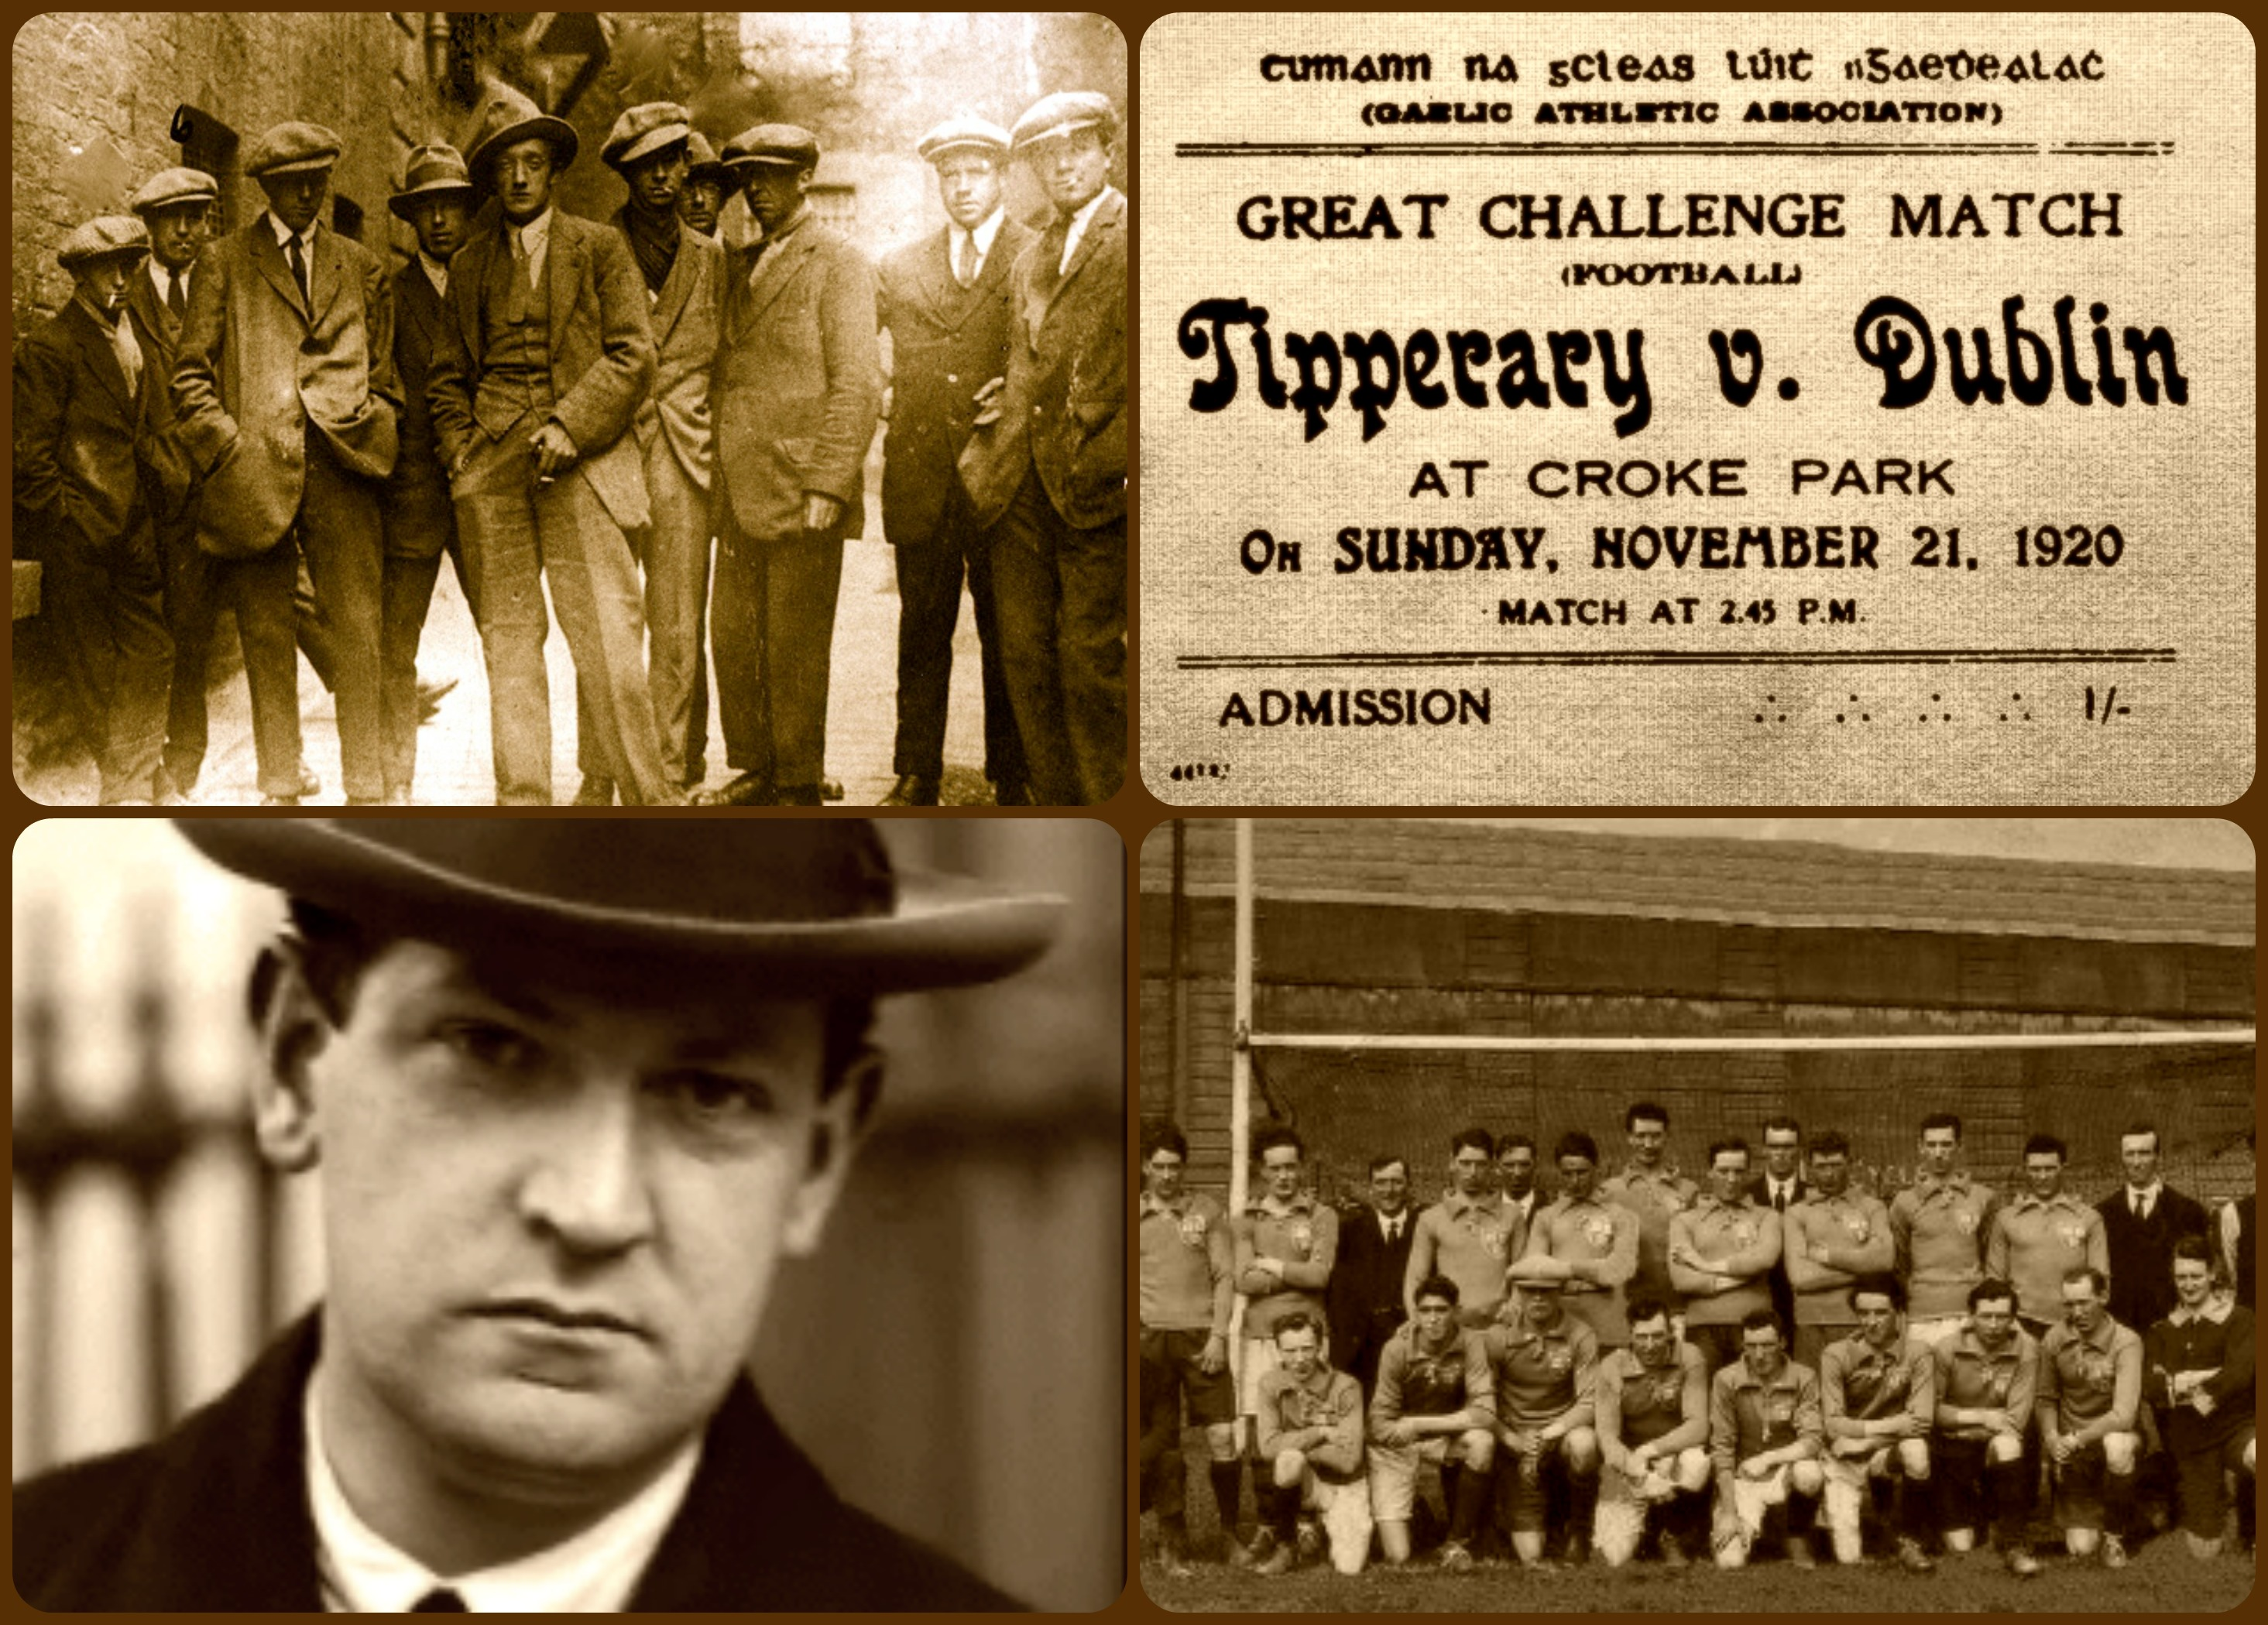 bloody sunday history coursework The troubles in ireland and bloody sunday :  ap european history:  summary of coursework flashcards - ap european history:.